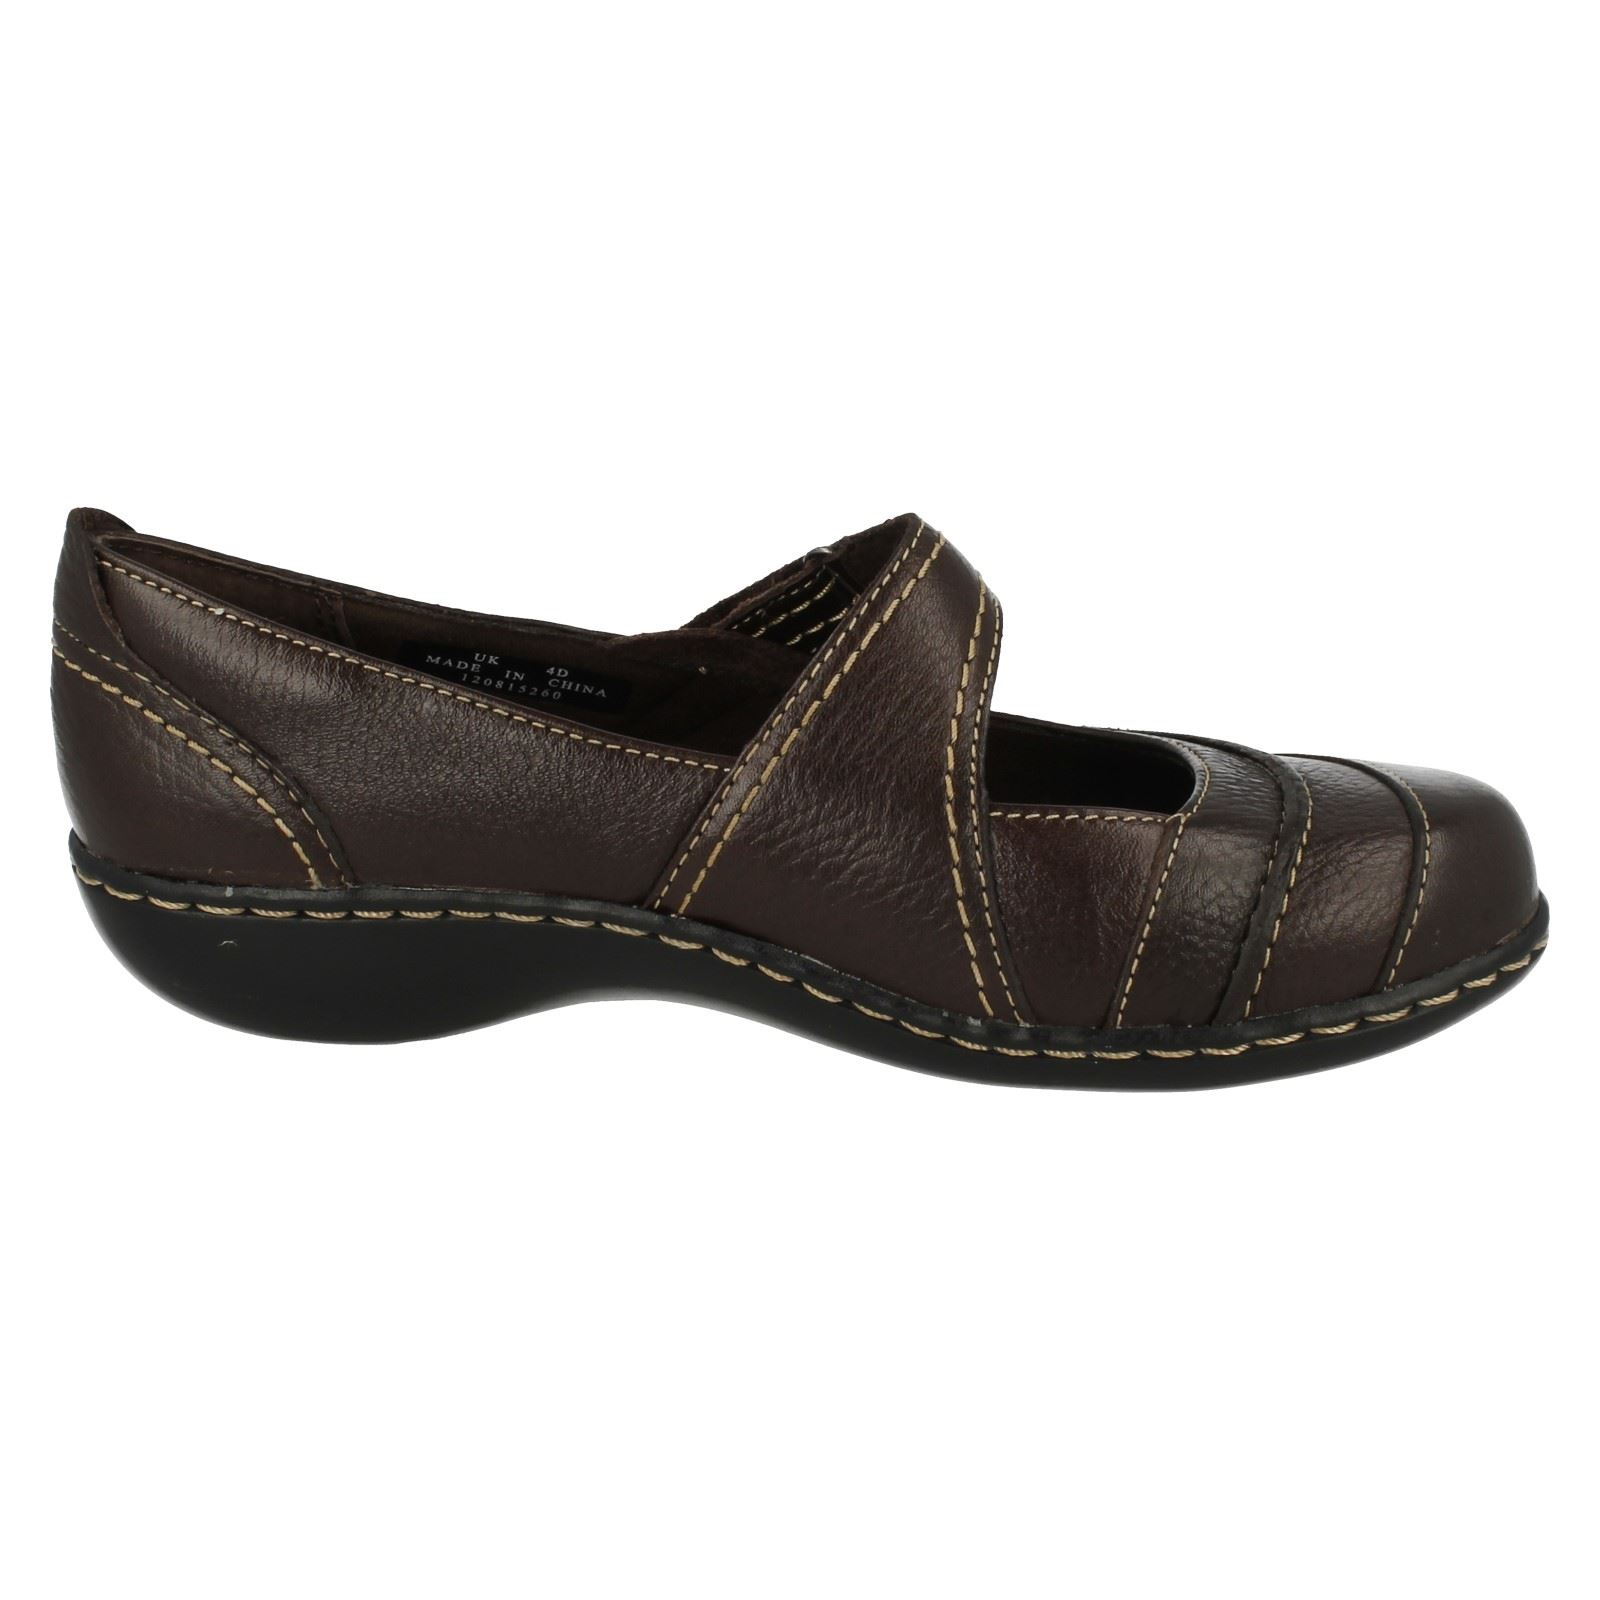 Ladies Clarks Casual shoes shoes shoes Embrace Chat 216c6c